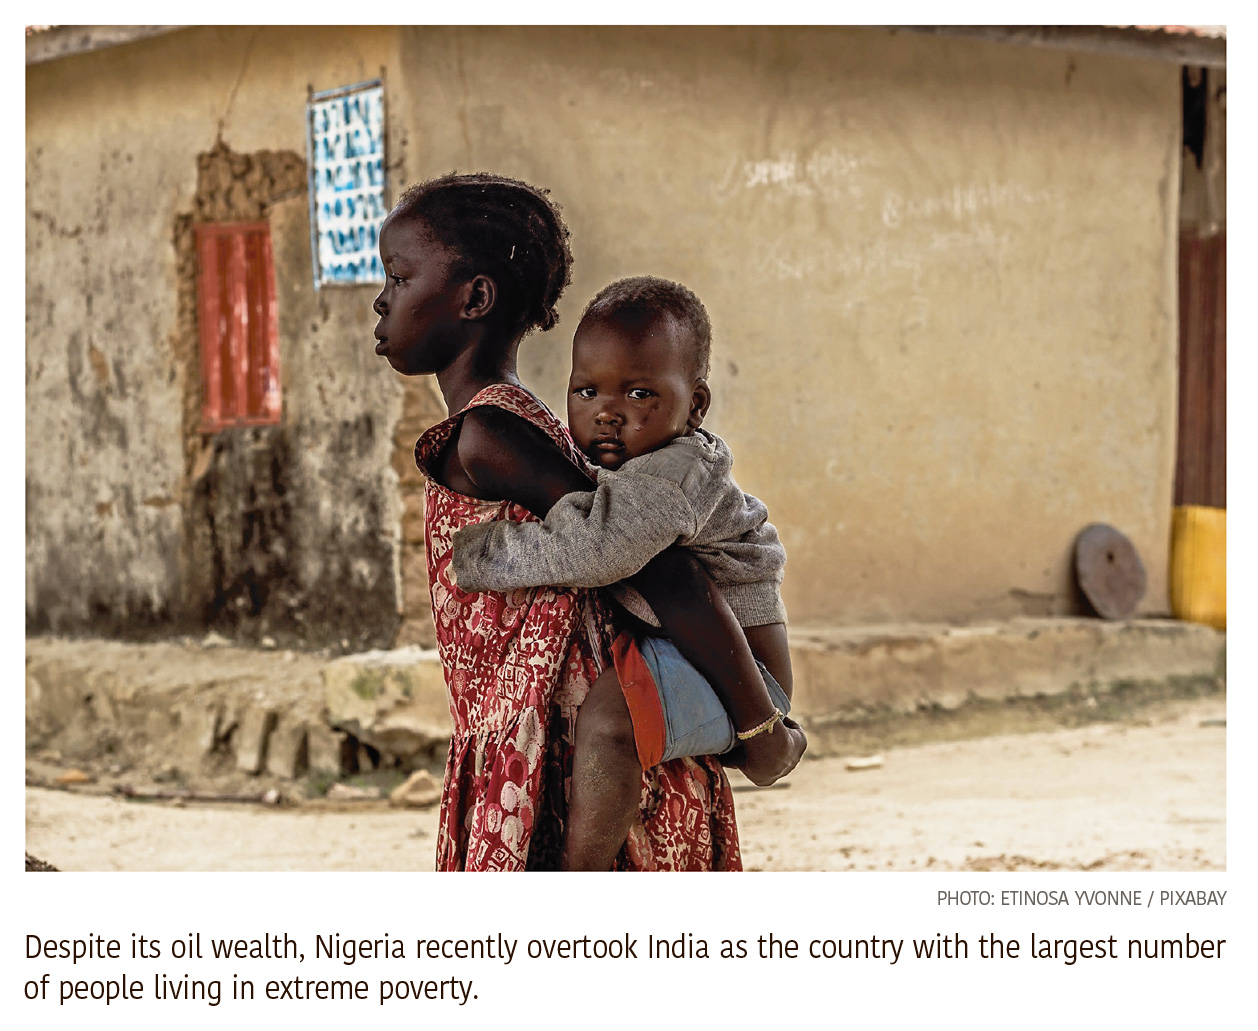 a3.elections.nigeria.poverty.story